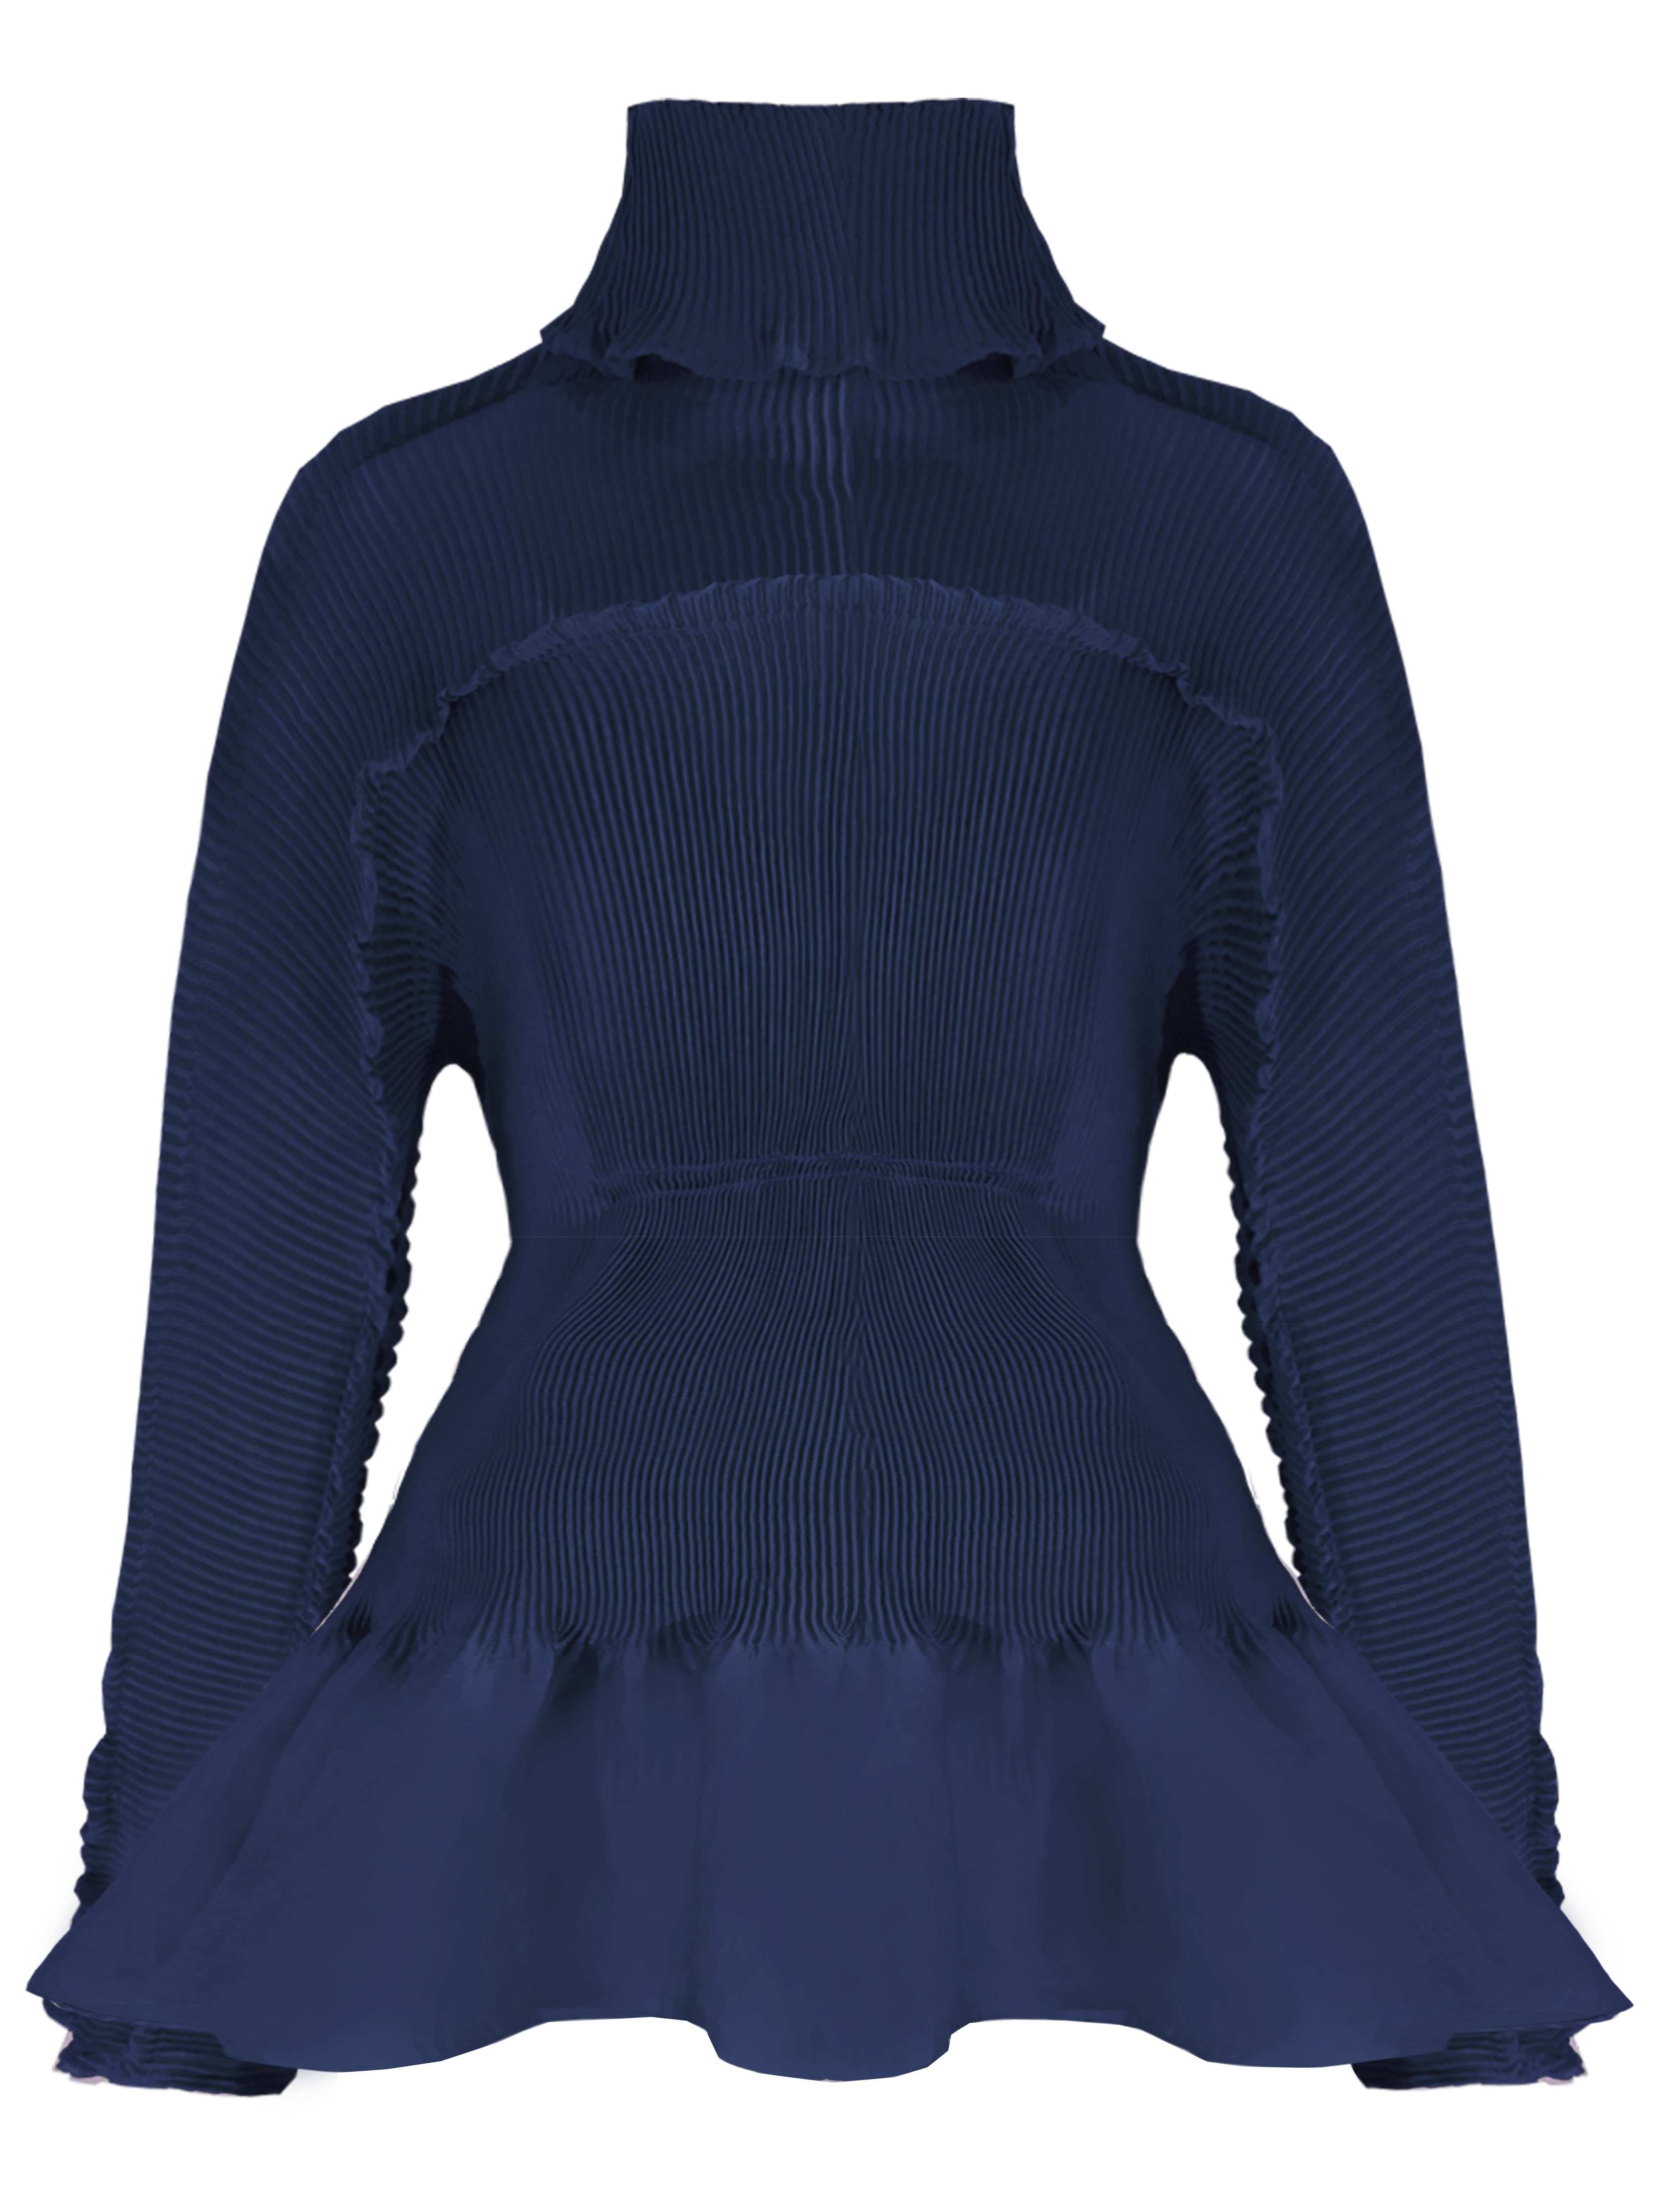 Osirus Turtleneck - Navy by Georgia Hardinge on curated-crowd.com